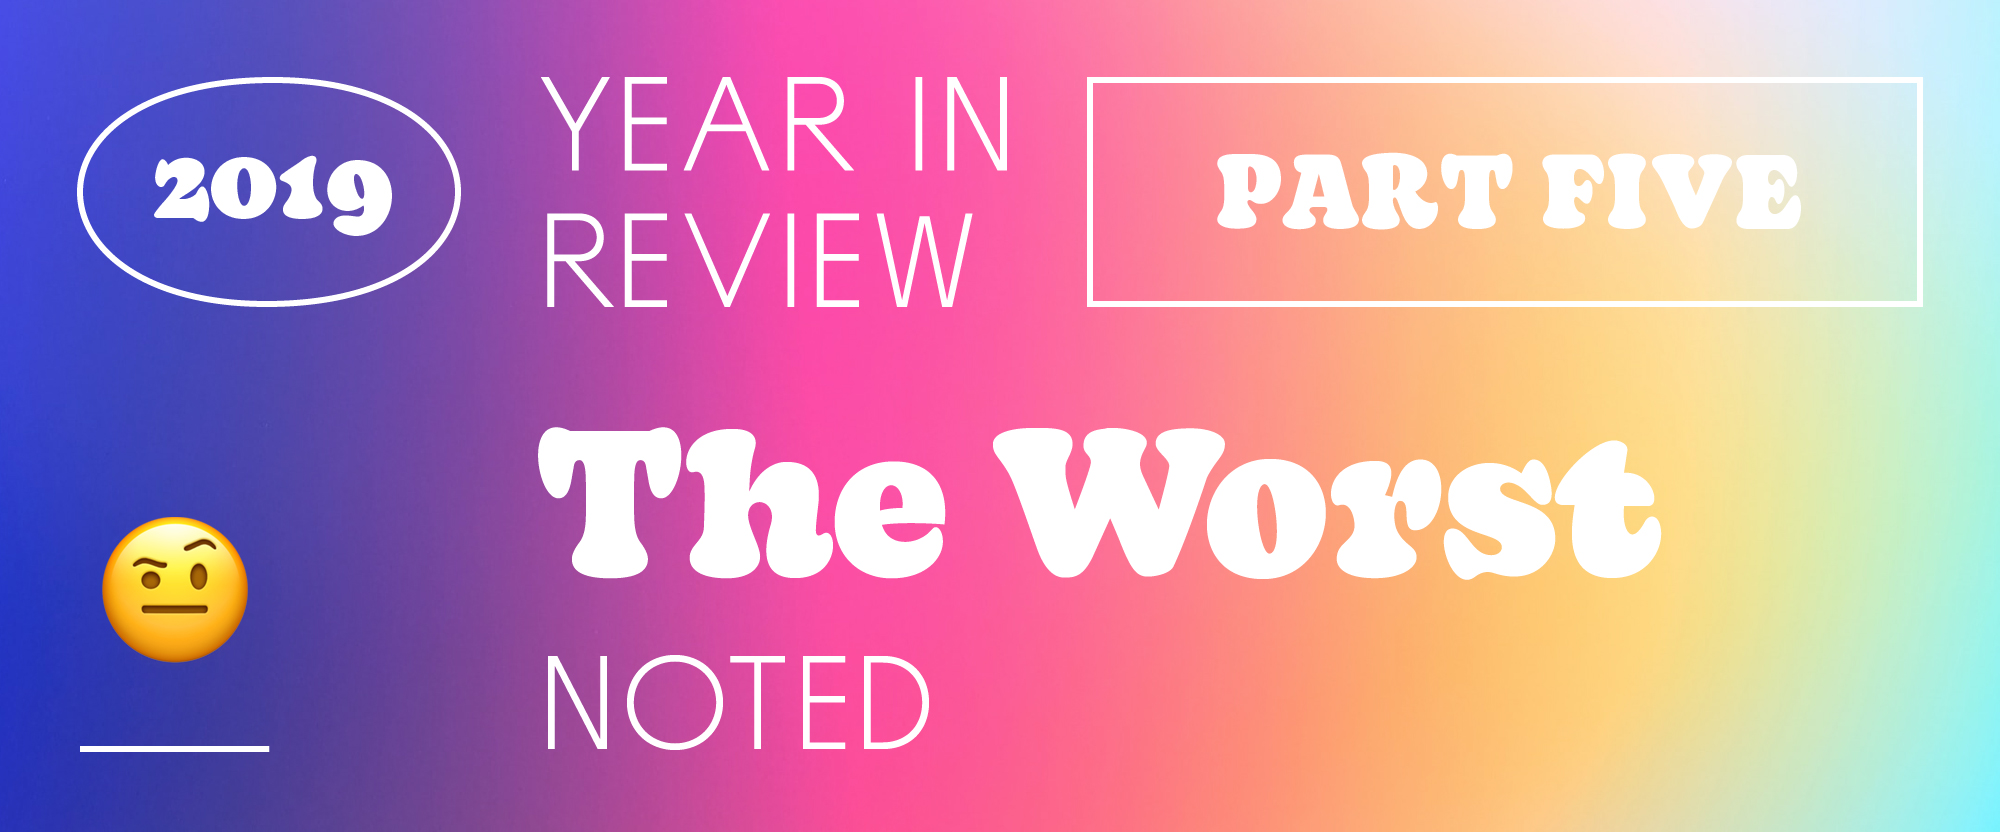 The Best and Worst Identities of 2019, Part 5: The Worst Noted